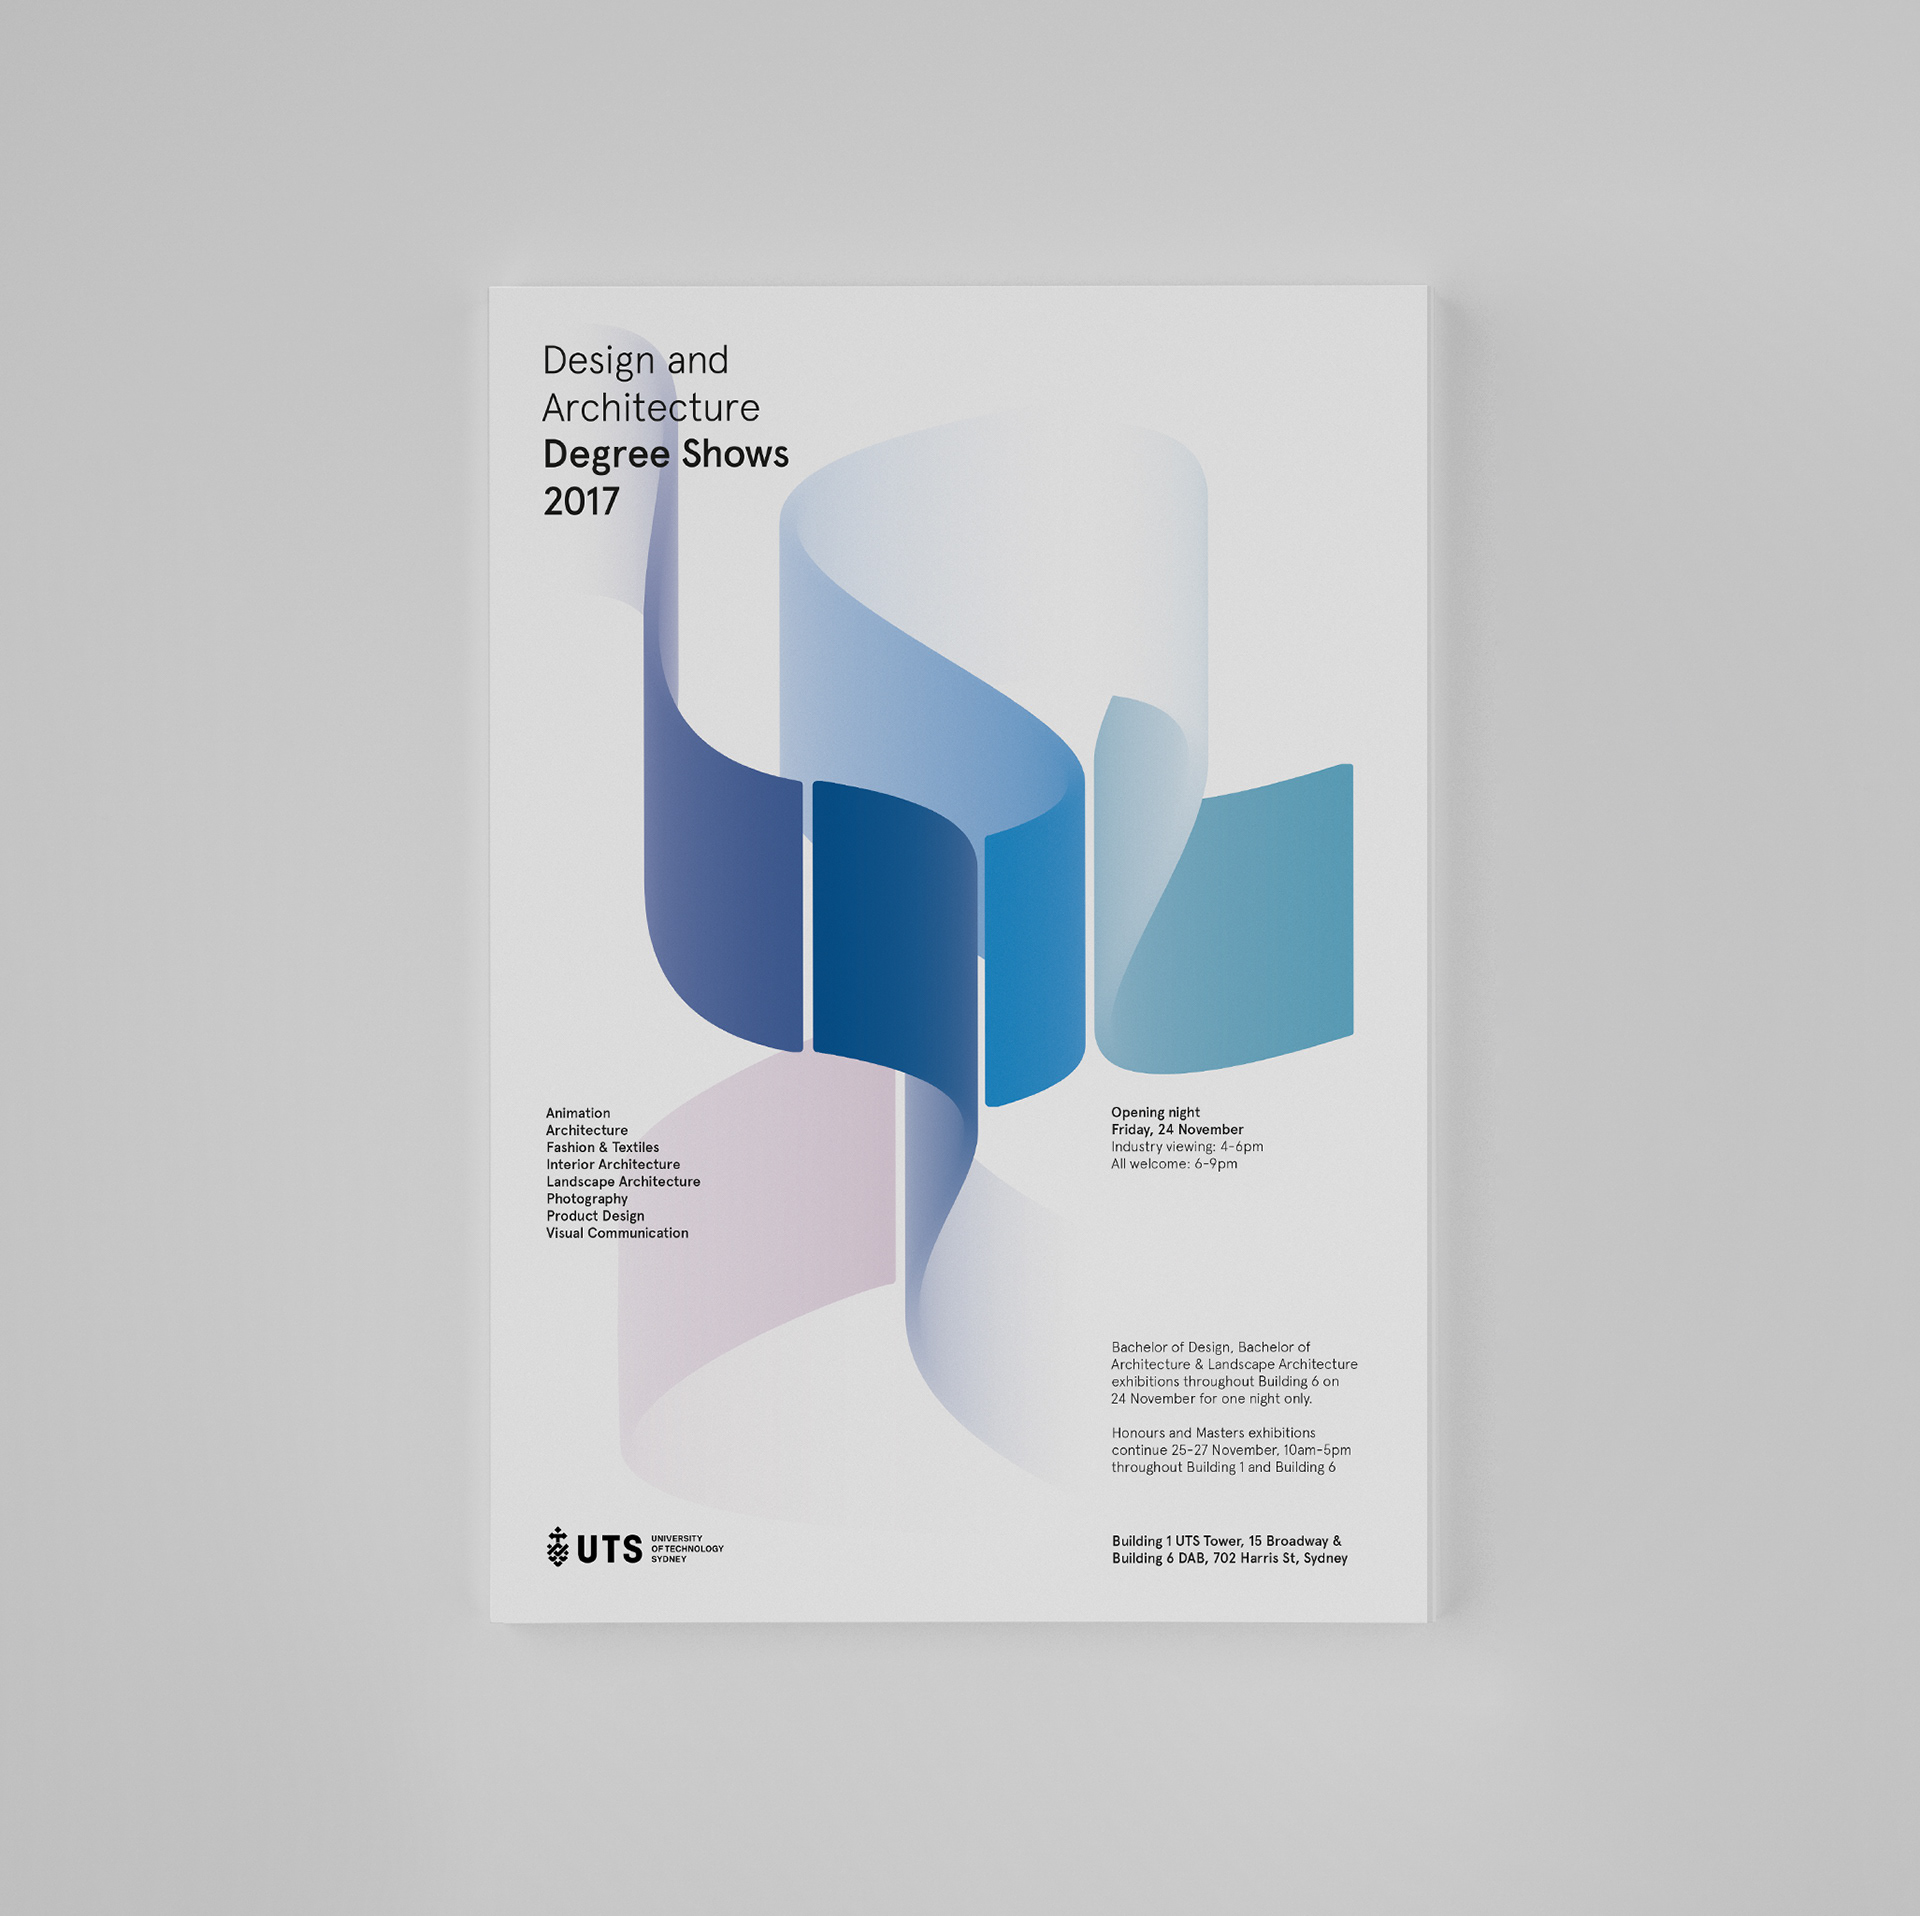 Uts Design And Architecture Degree Shows 2017 On Behance